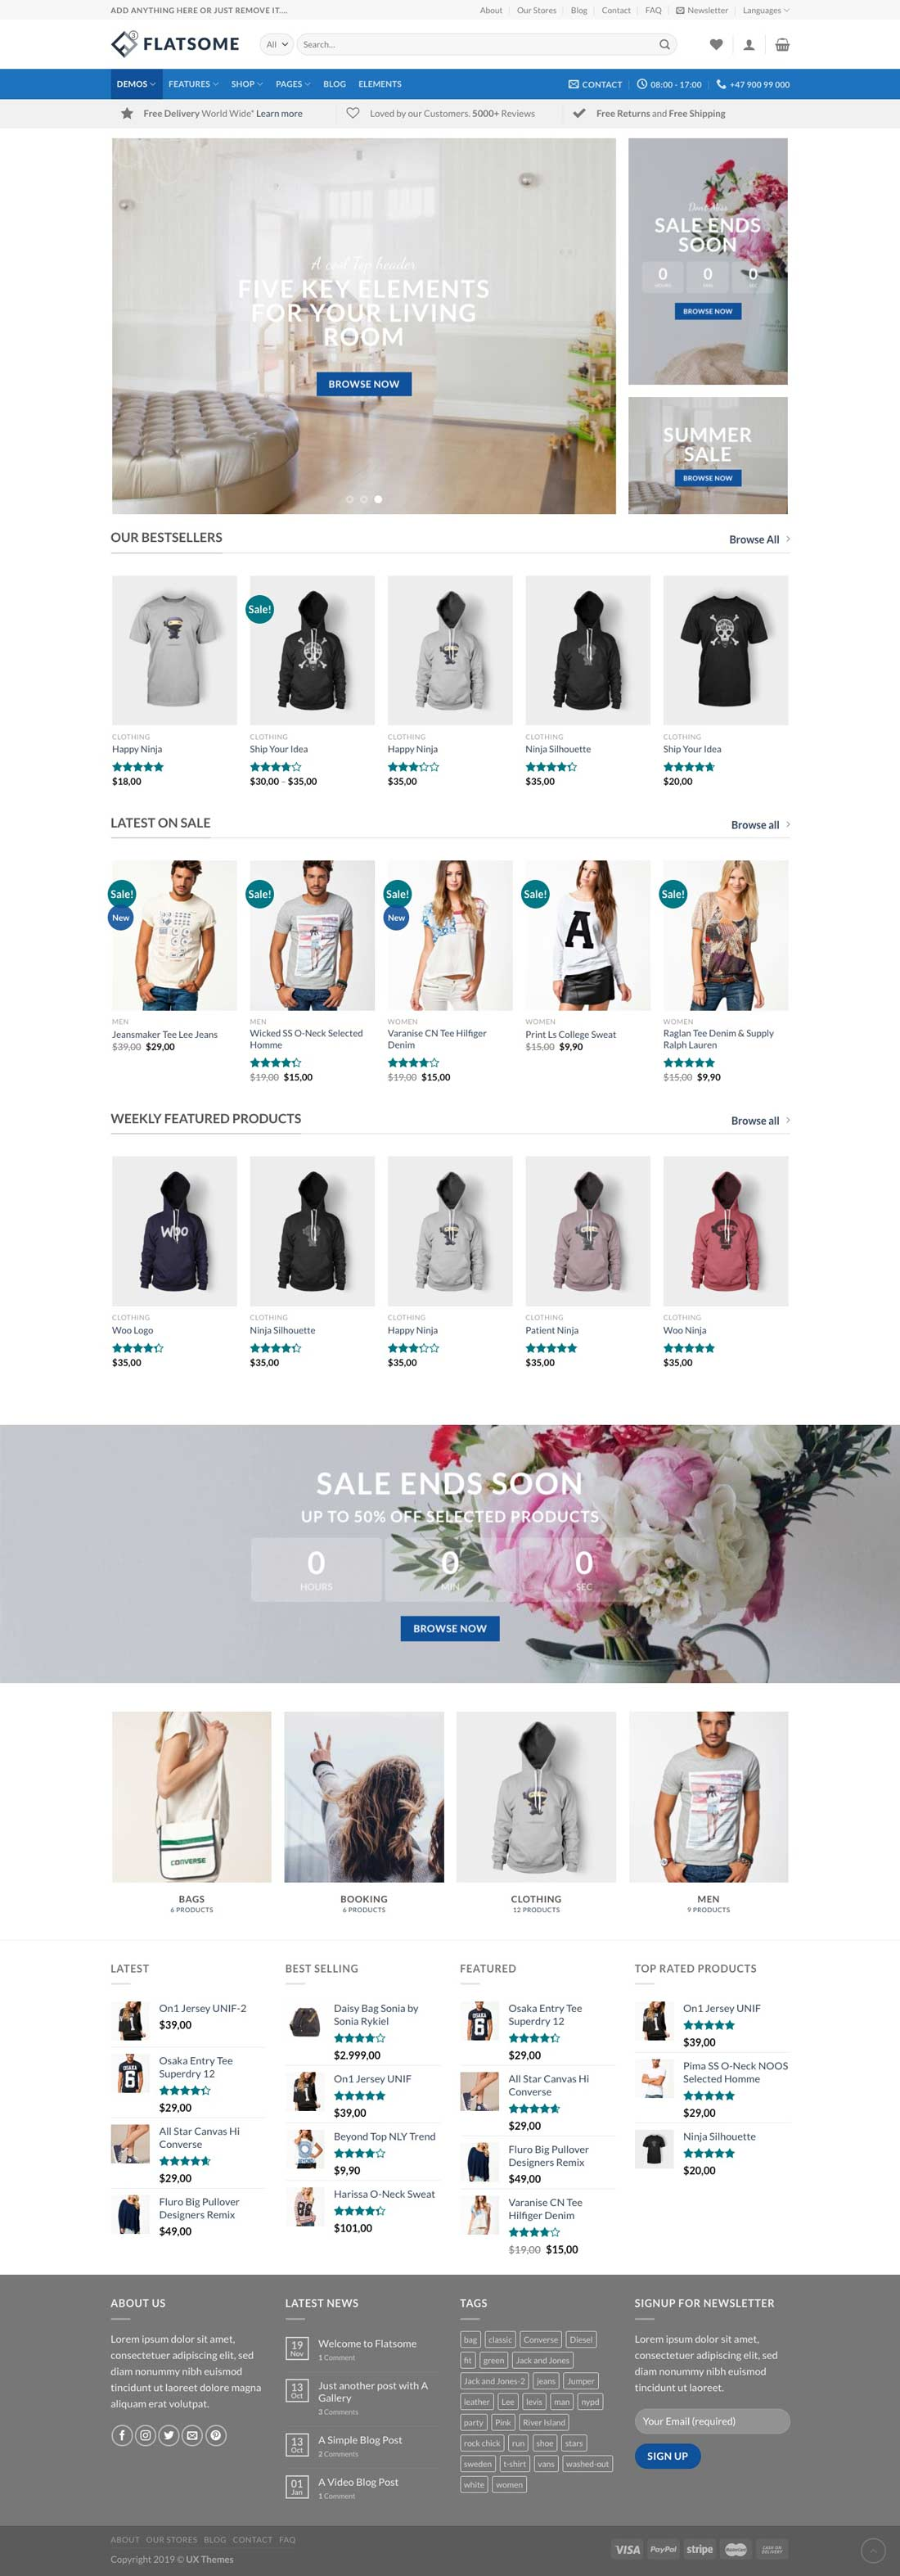 ecommerce website design sample